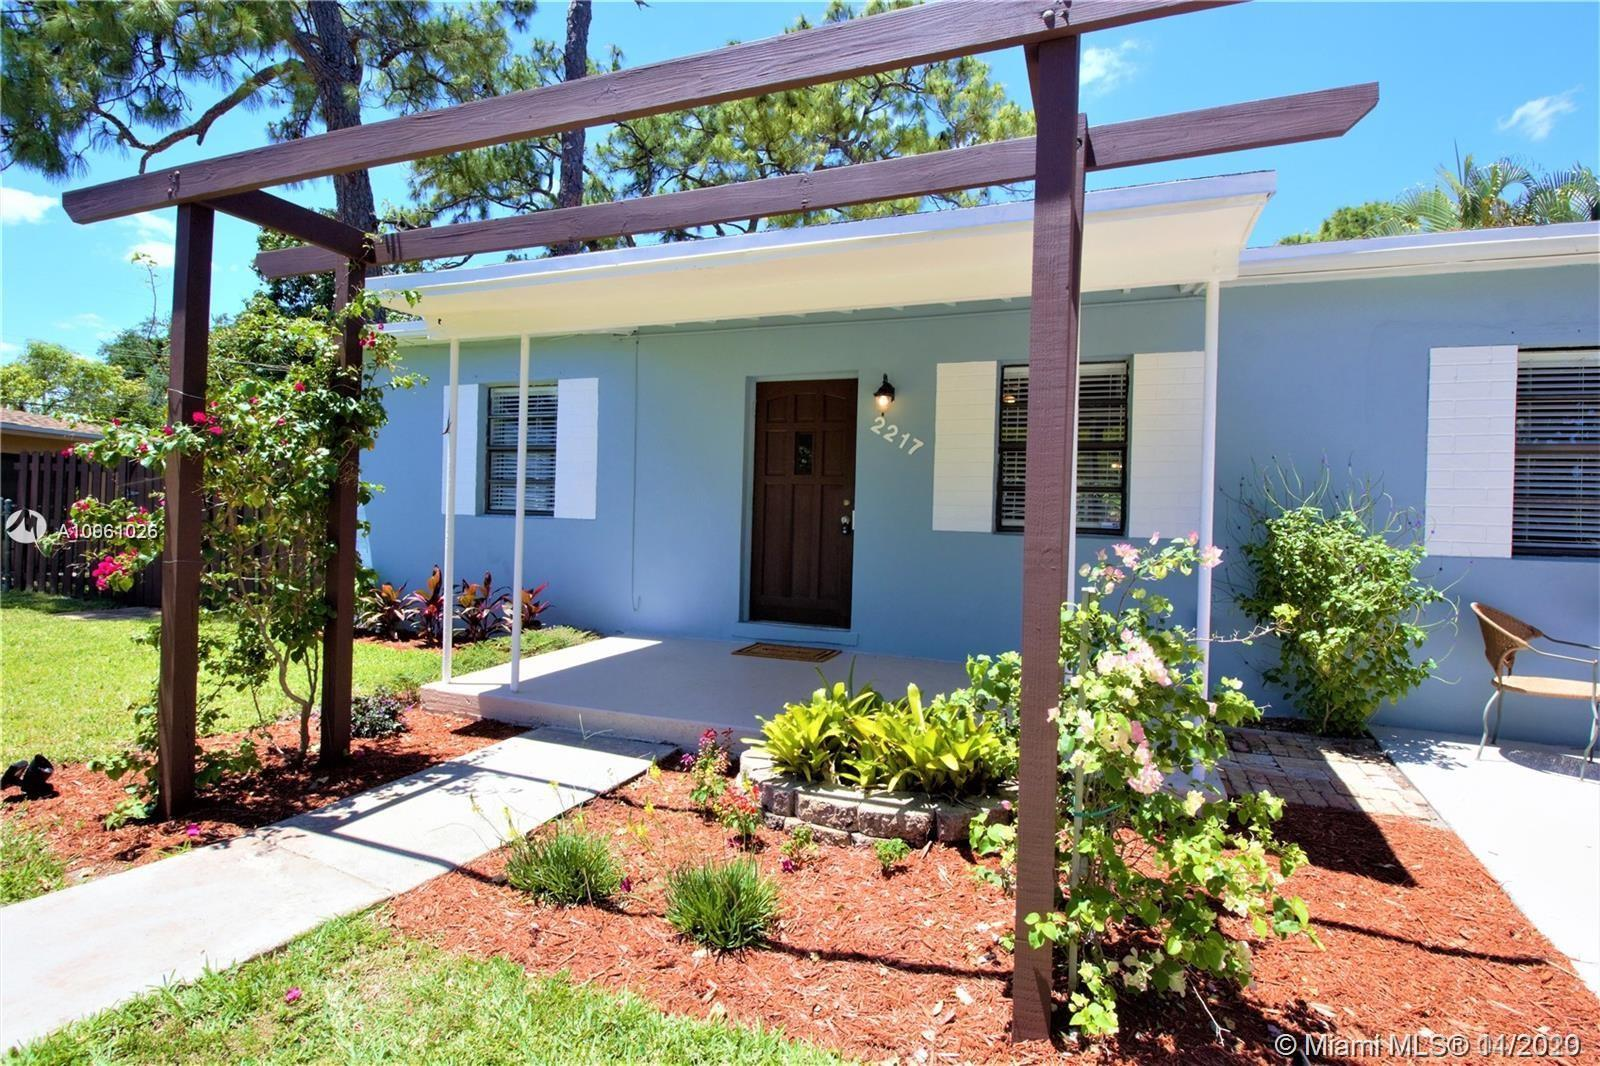 TRUE PRIDE OF OWNERSHIP REALLY SHINES THROUGH WITH THIS BEAUTY! THIS RENOVATED GEM WITH AN UPDATED O